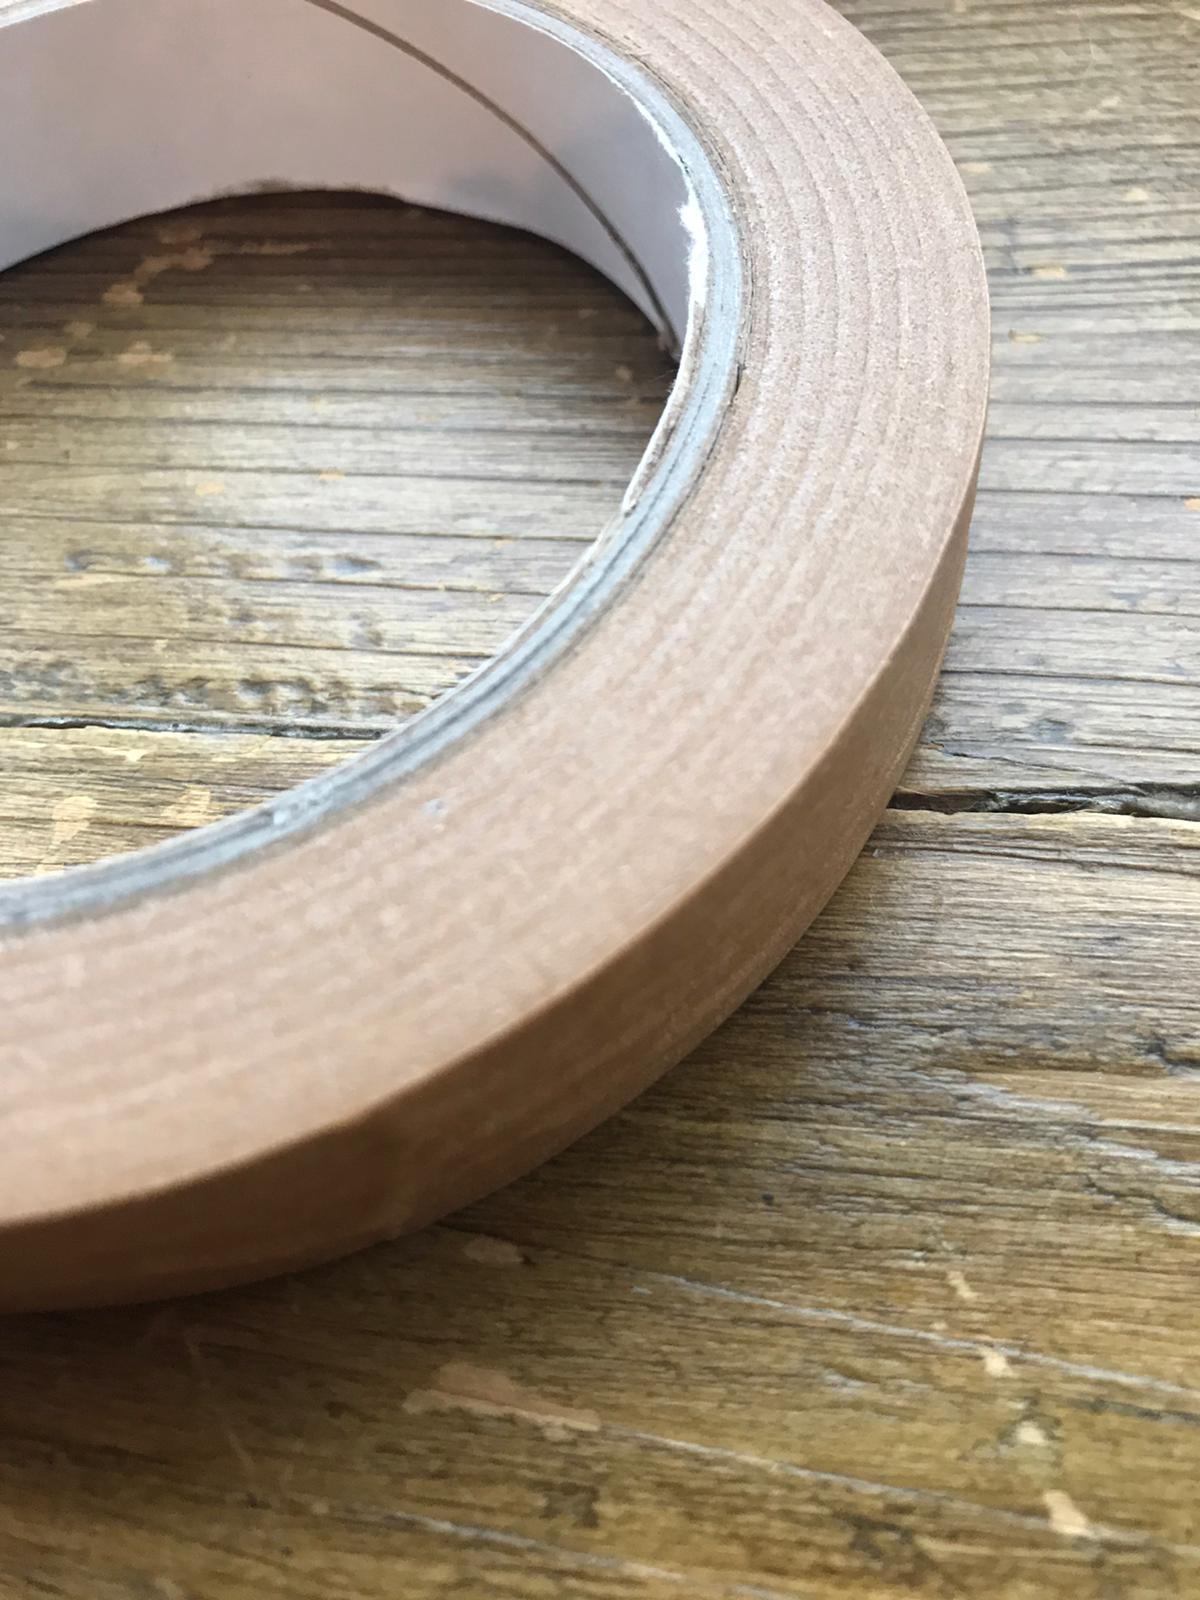 self adhesive brown paper tape